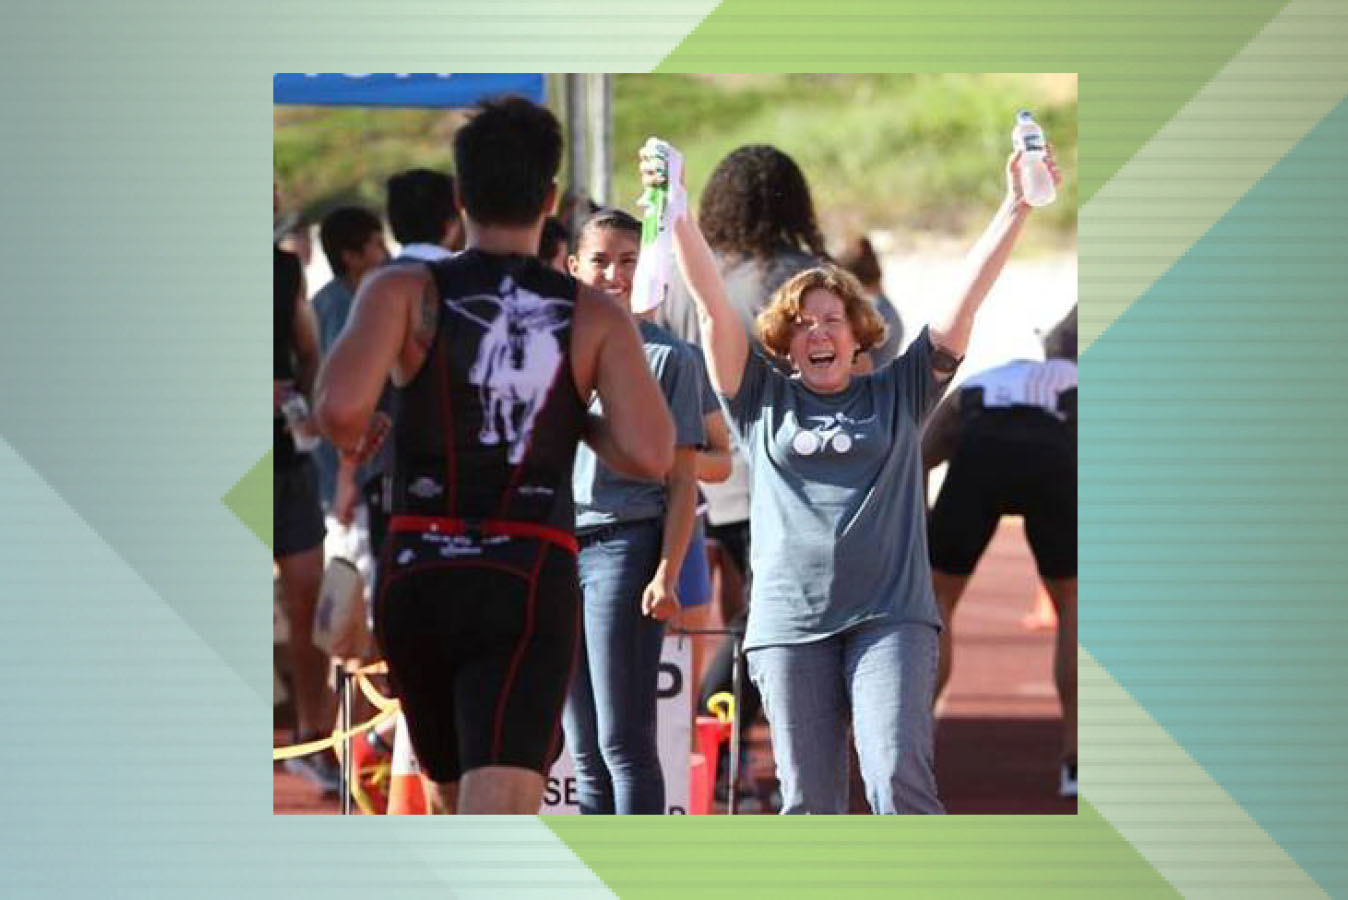 Strong Women of Mighty Mujer Triathlon: Dr. Theresa Byrd